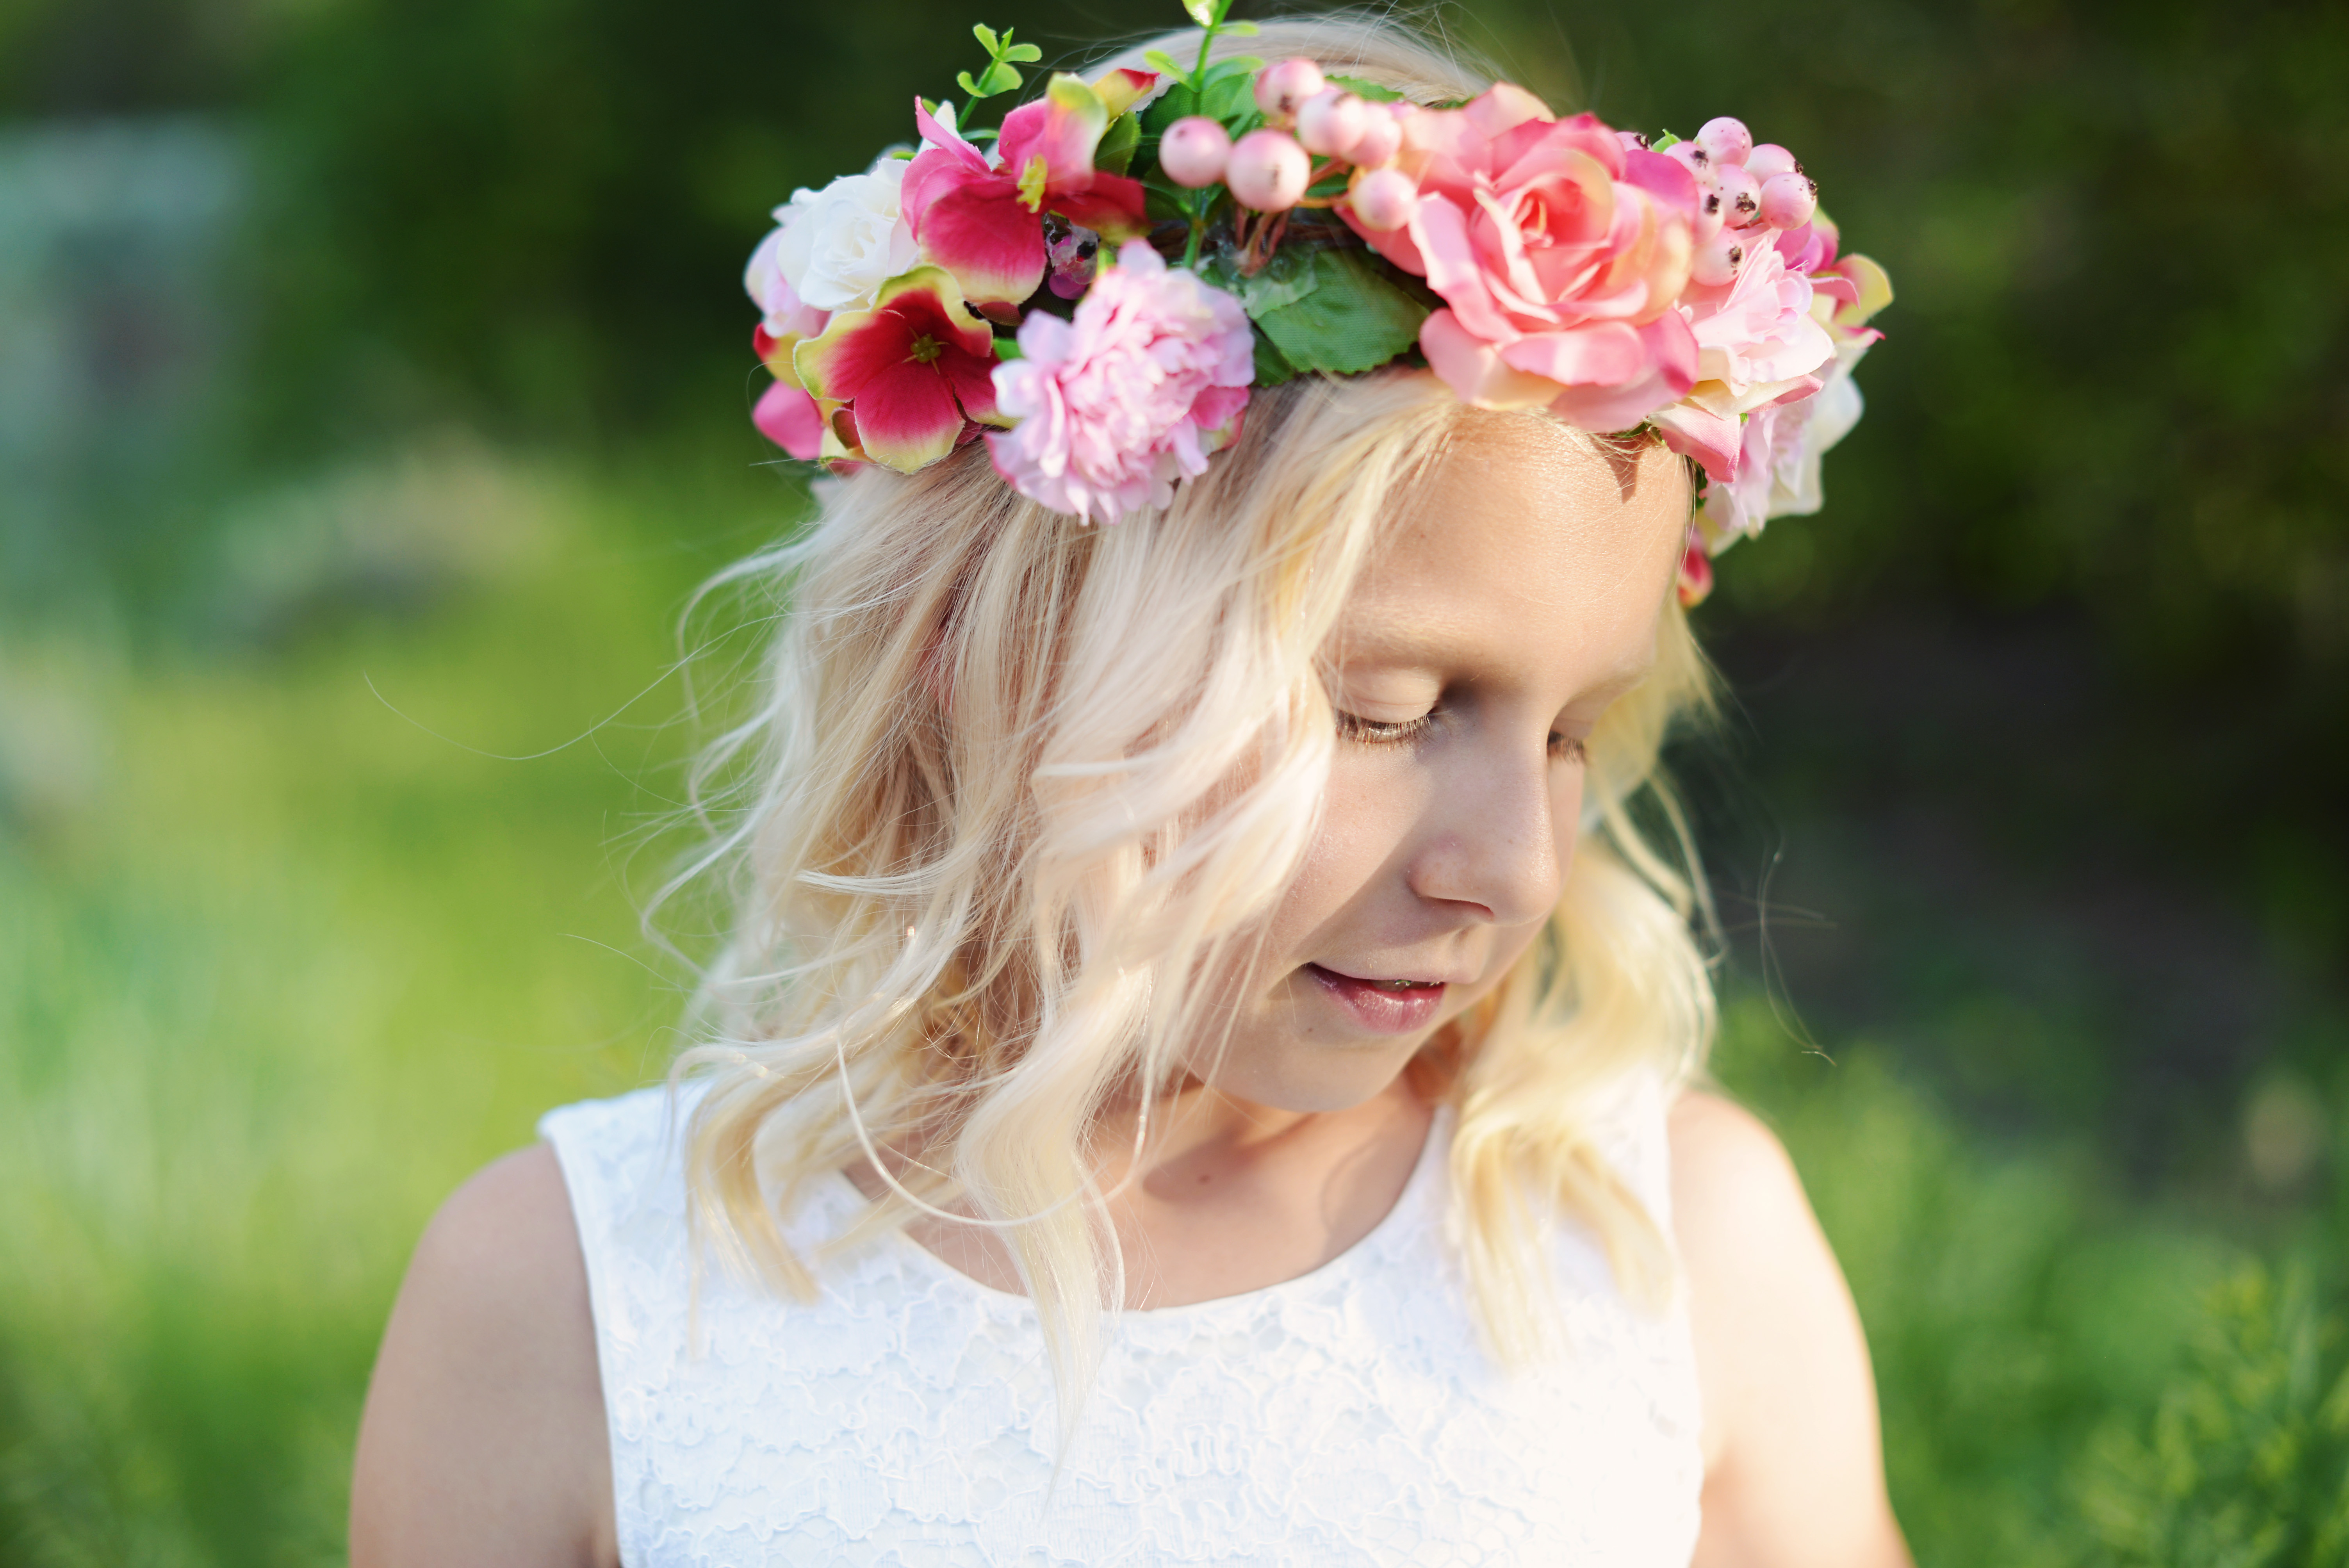 Visit our range of handmade floral hair crowns and wreaths by gilly an ivory and pink flower girl crown with pink flowers and leaf green accents izmirmasajfo